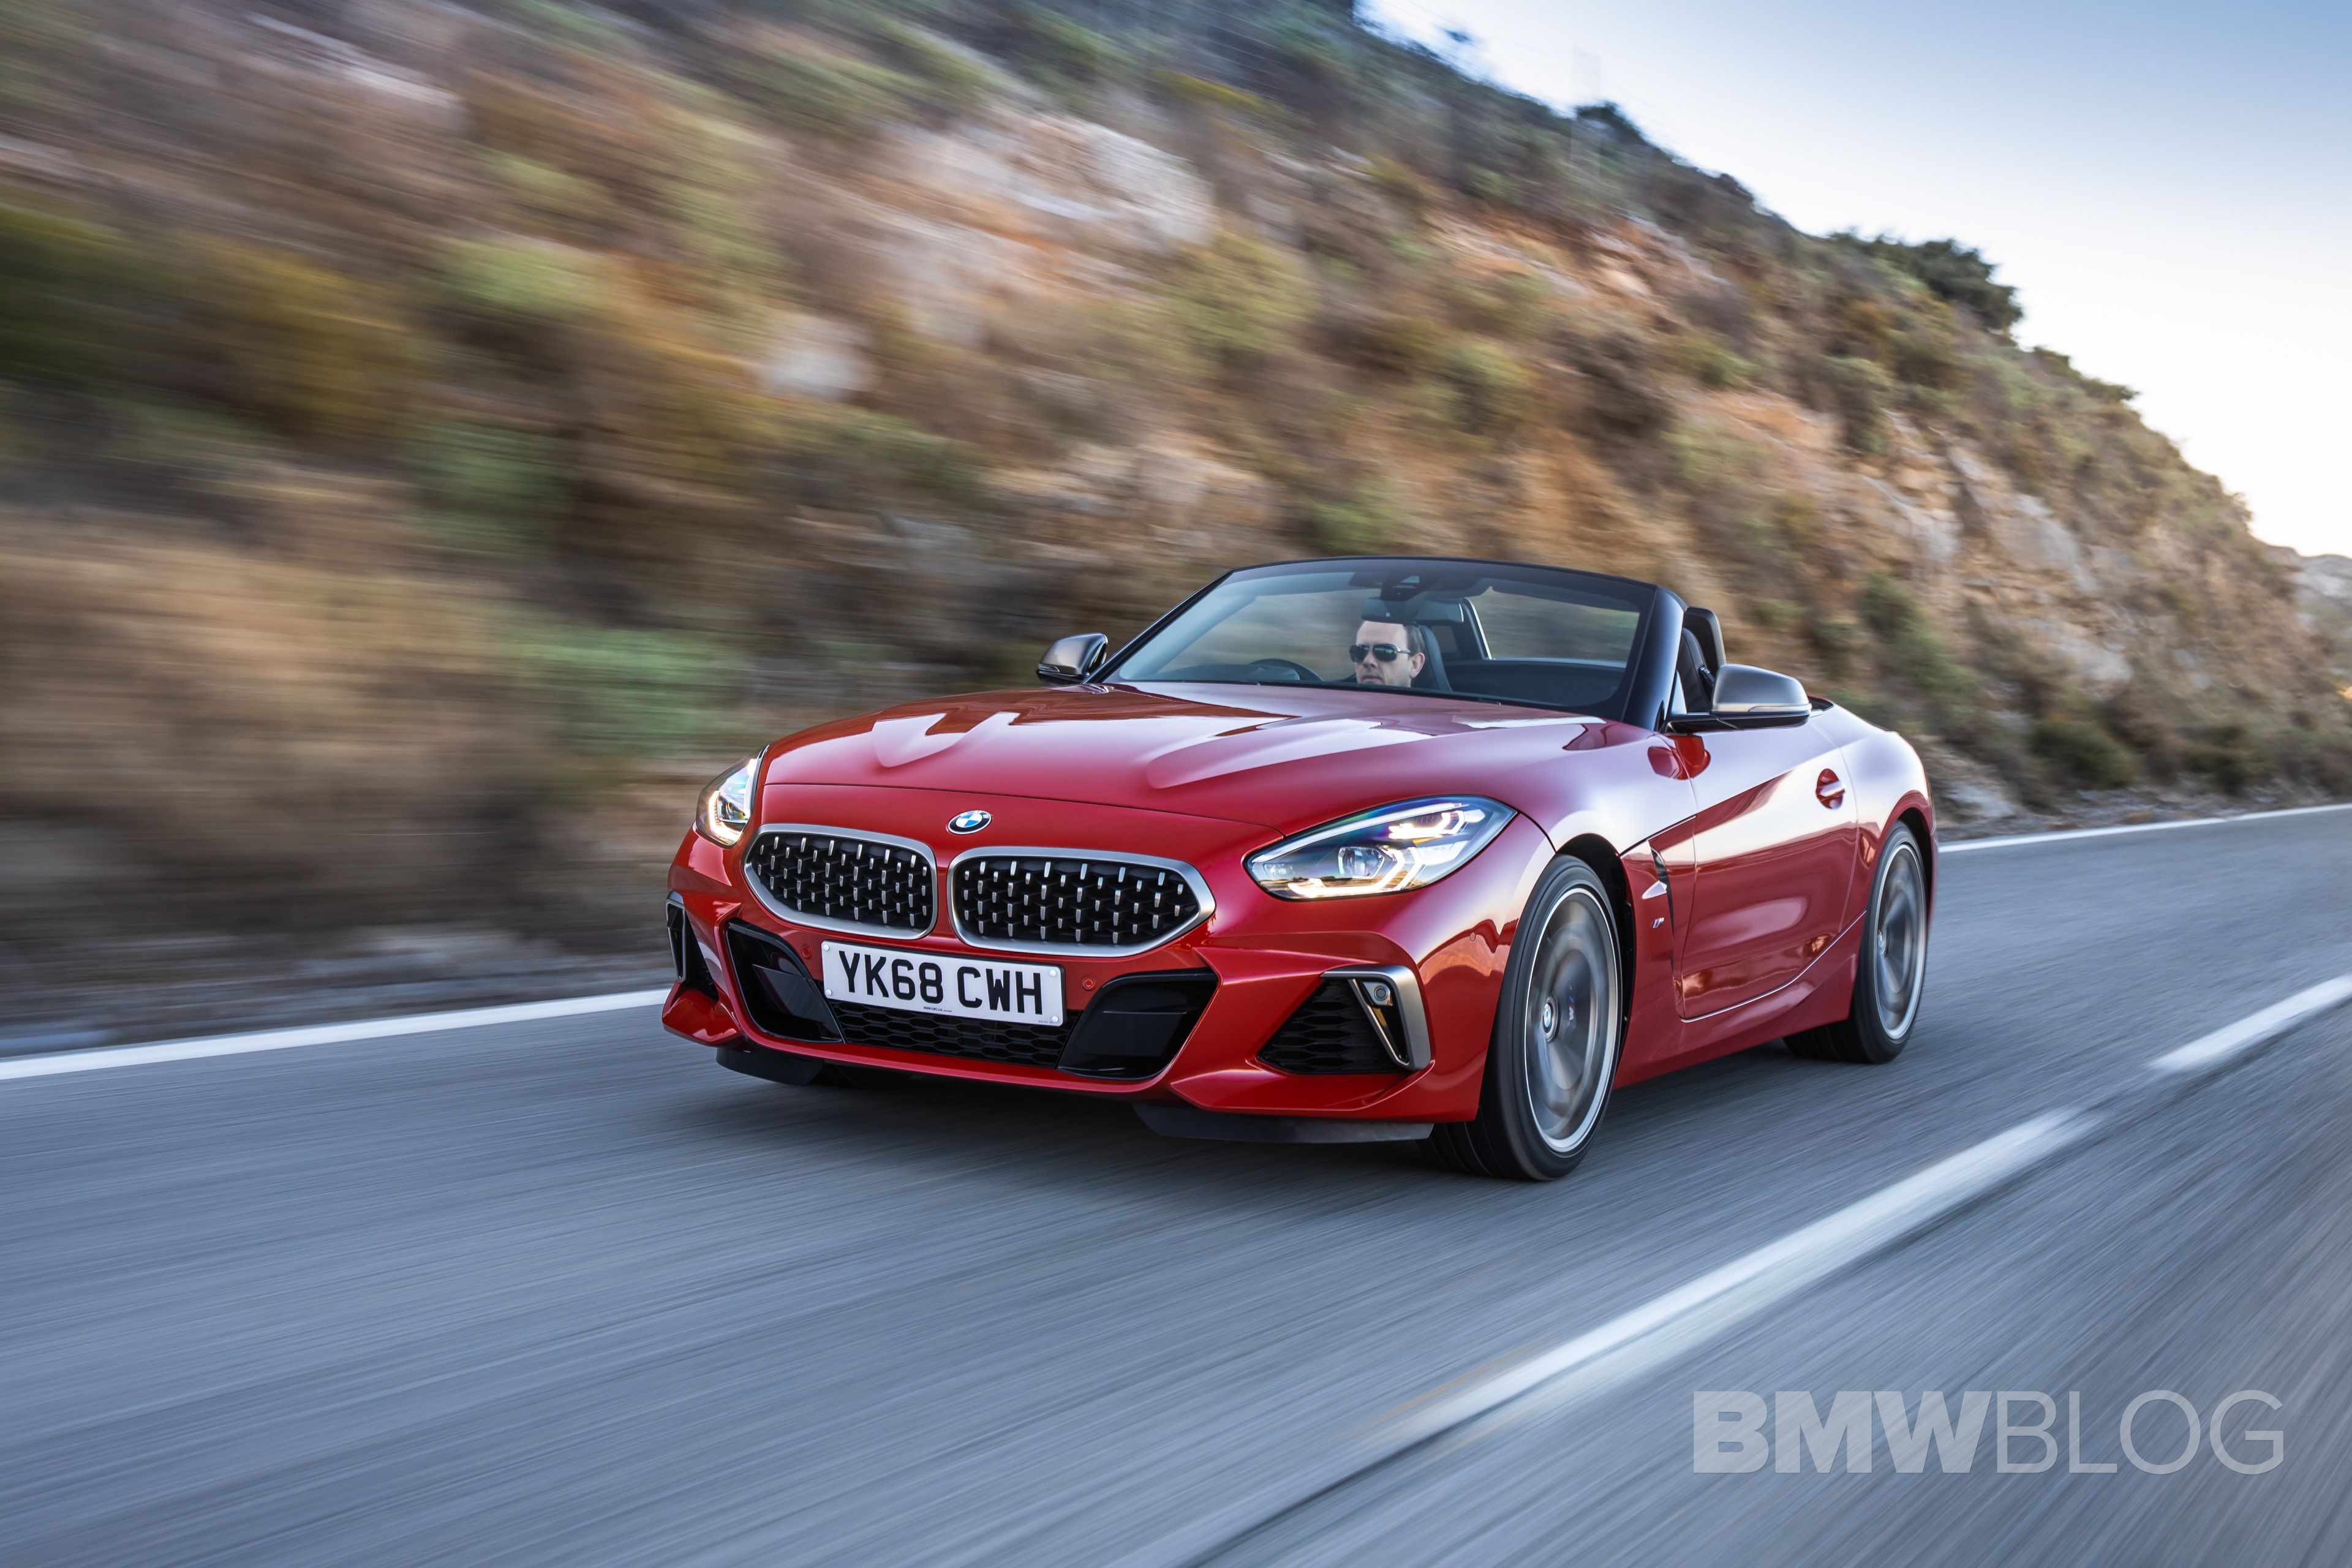 BMW Z4 M40i San Francisco Red 22